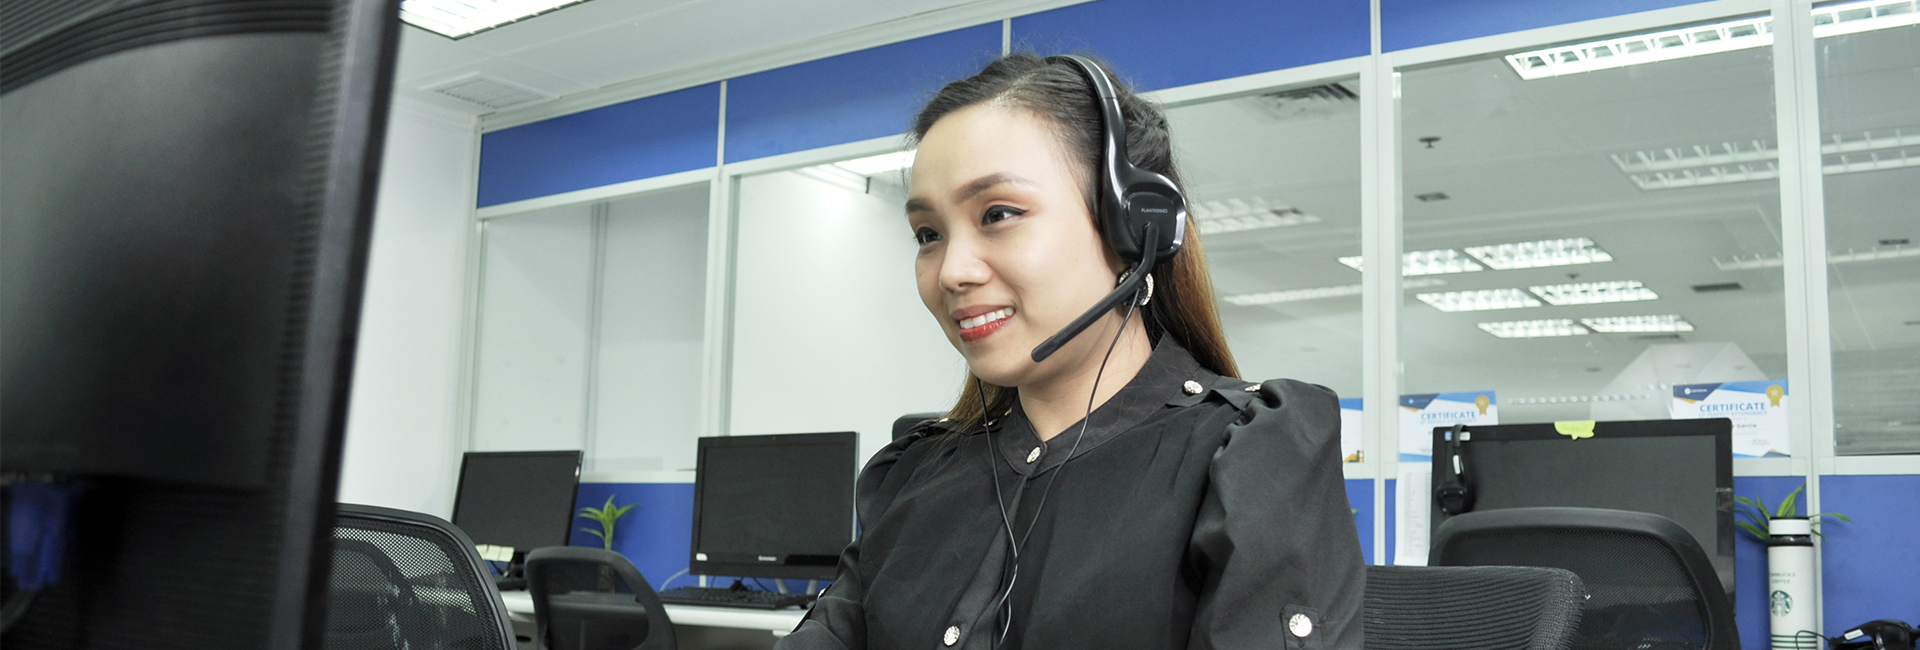 outsourcing-outbound-phone-support-representative-to-the-philippines